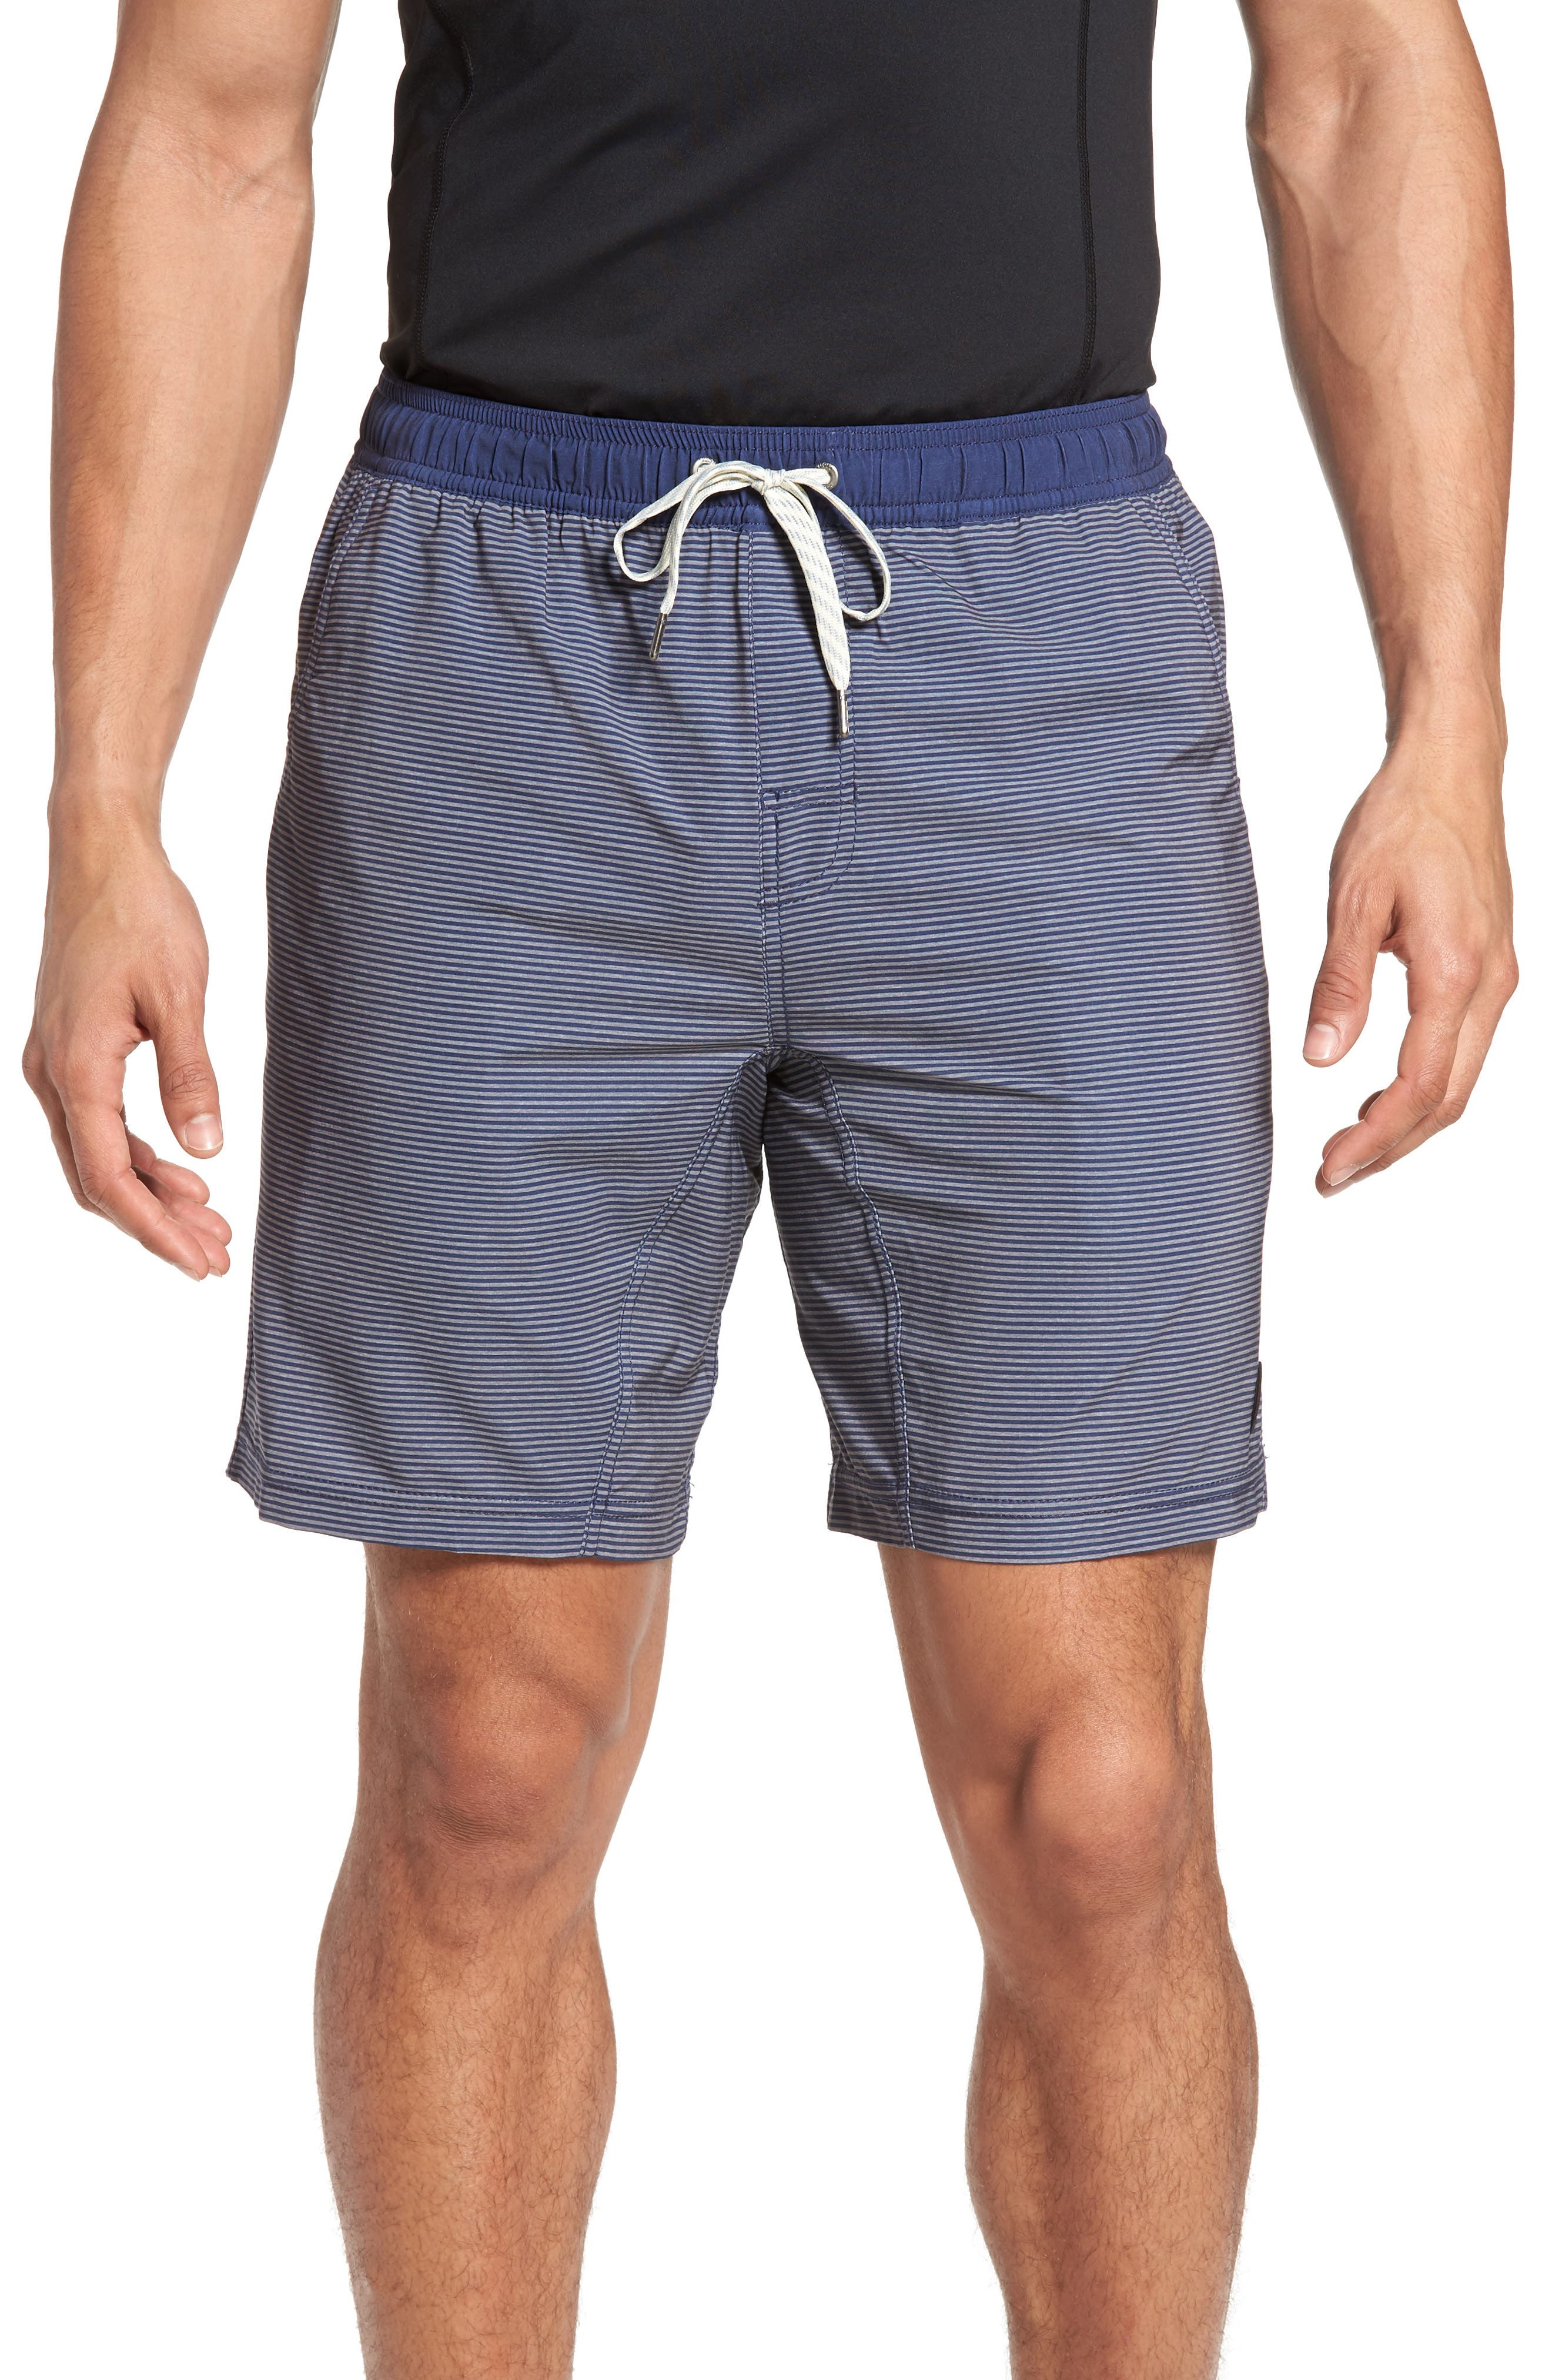 Kore Performance Shorts,                         Main,                         color, NAVY CHARCOAL STRIPE